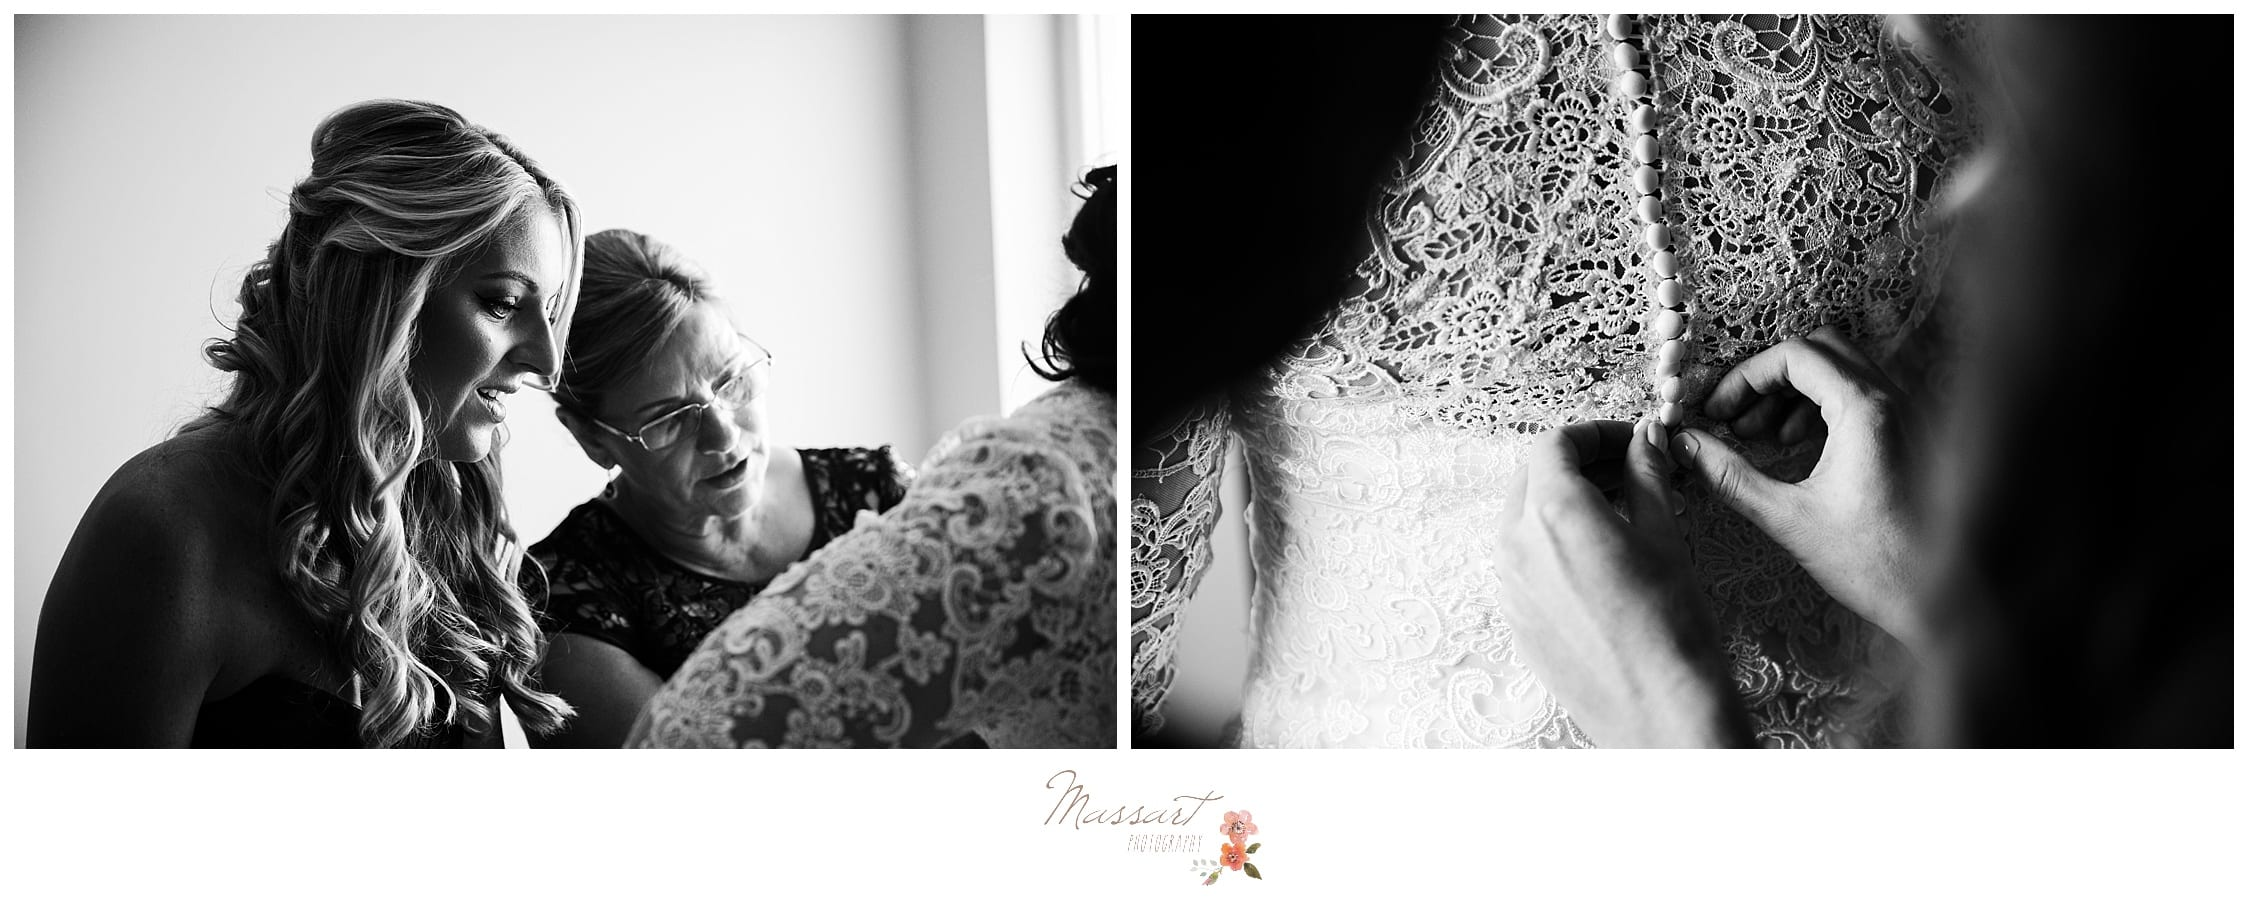 Bride gets her wedding gown put on by mother for her atlantic resort wedding ceremony in newport RI